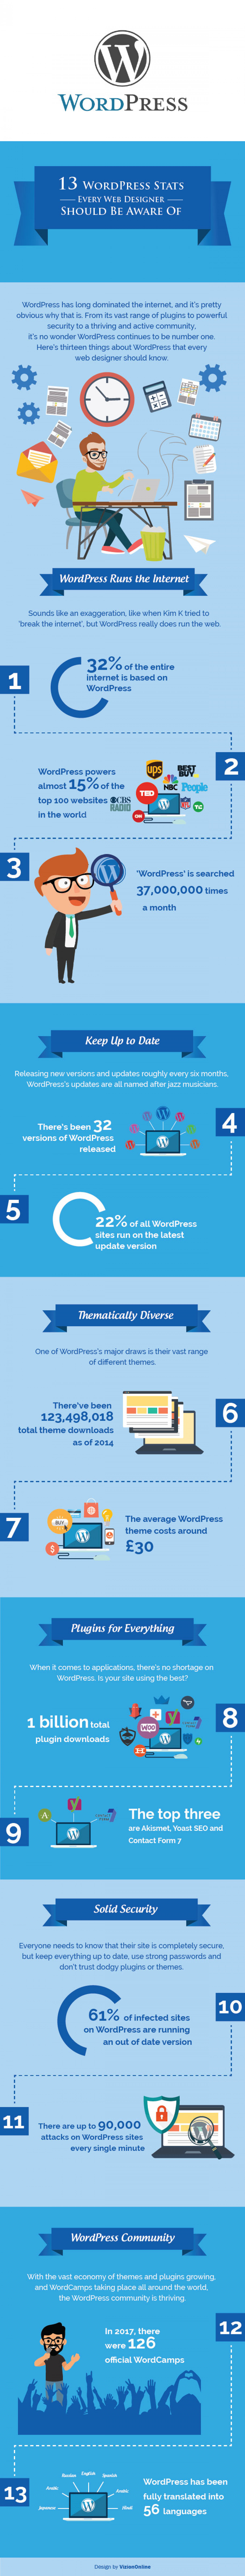 13 WordPress Stats Every Web Designer Should be Aware Of Infographic